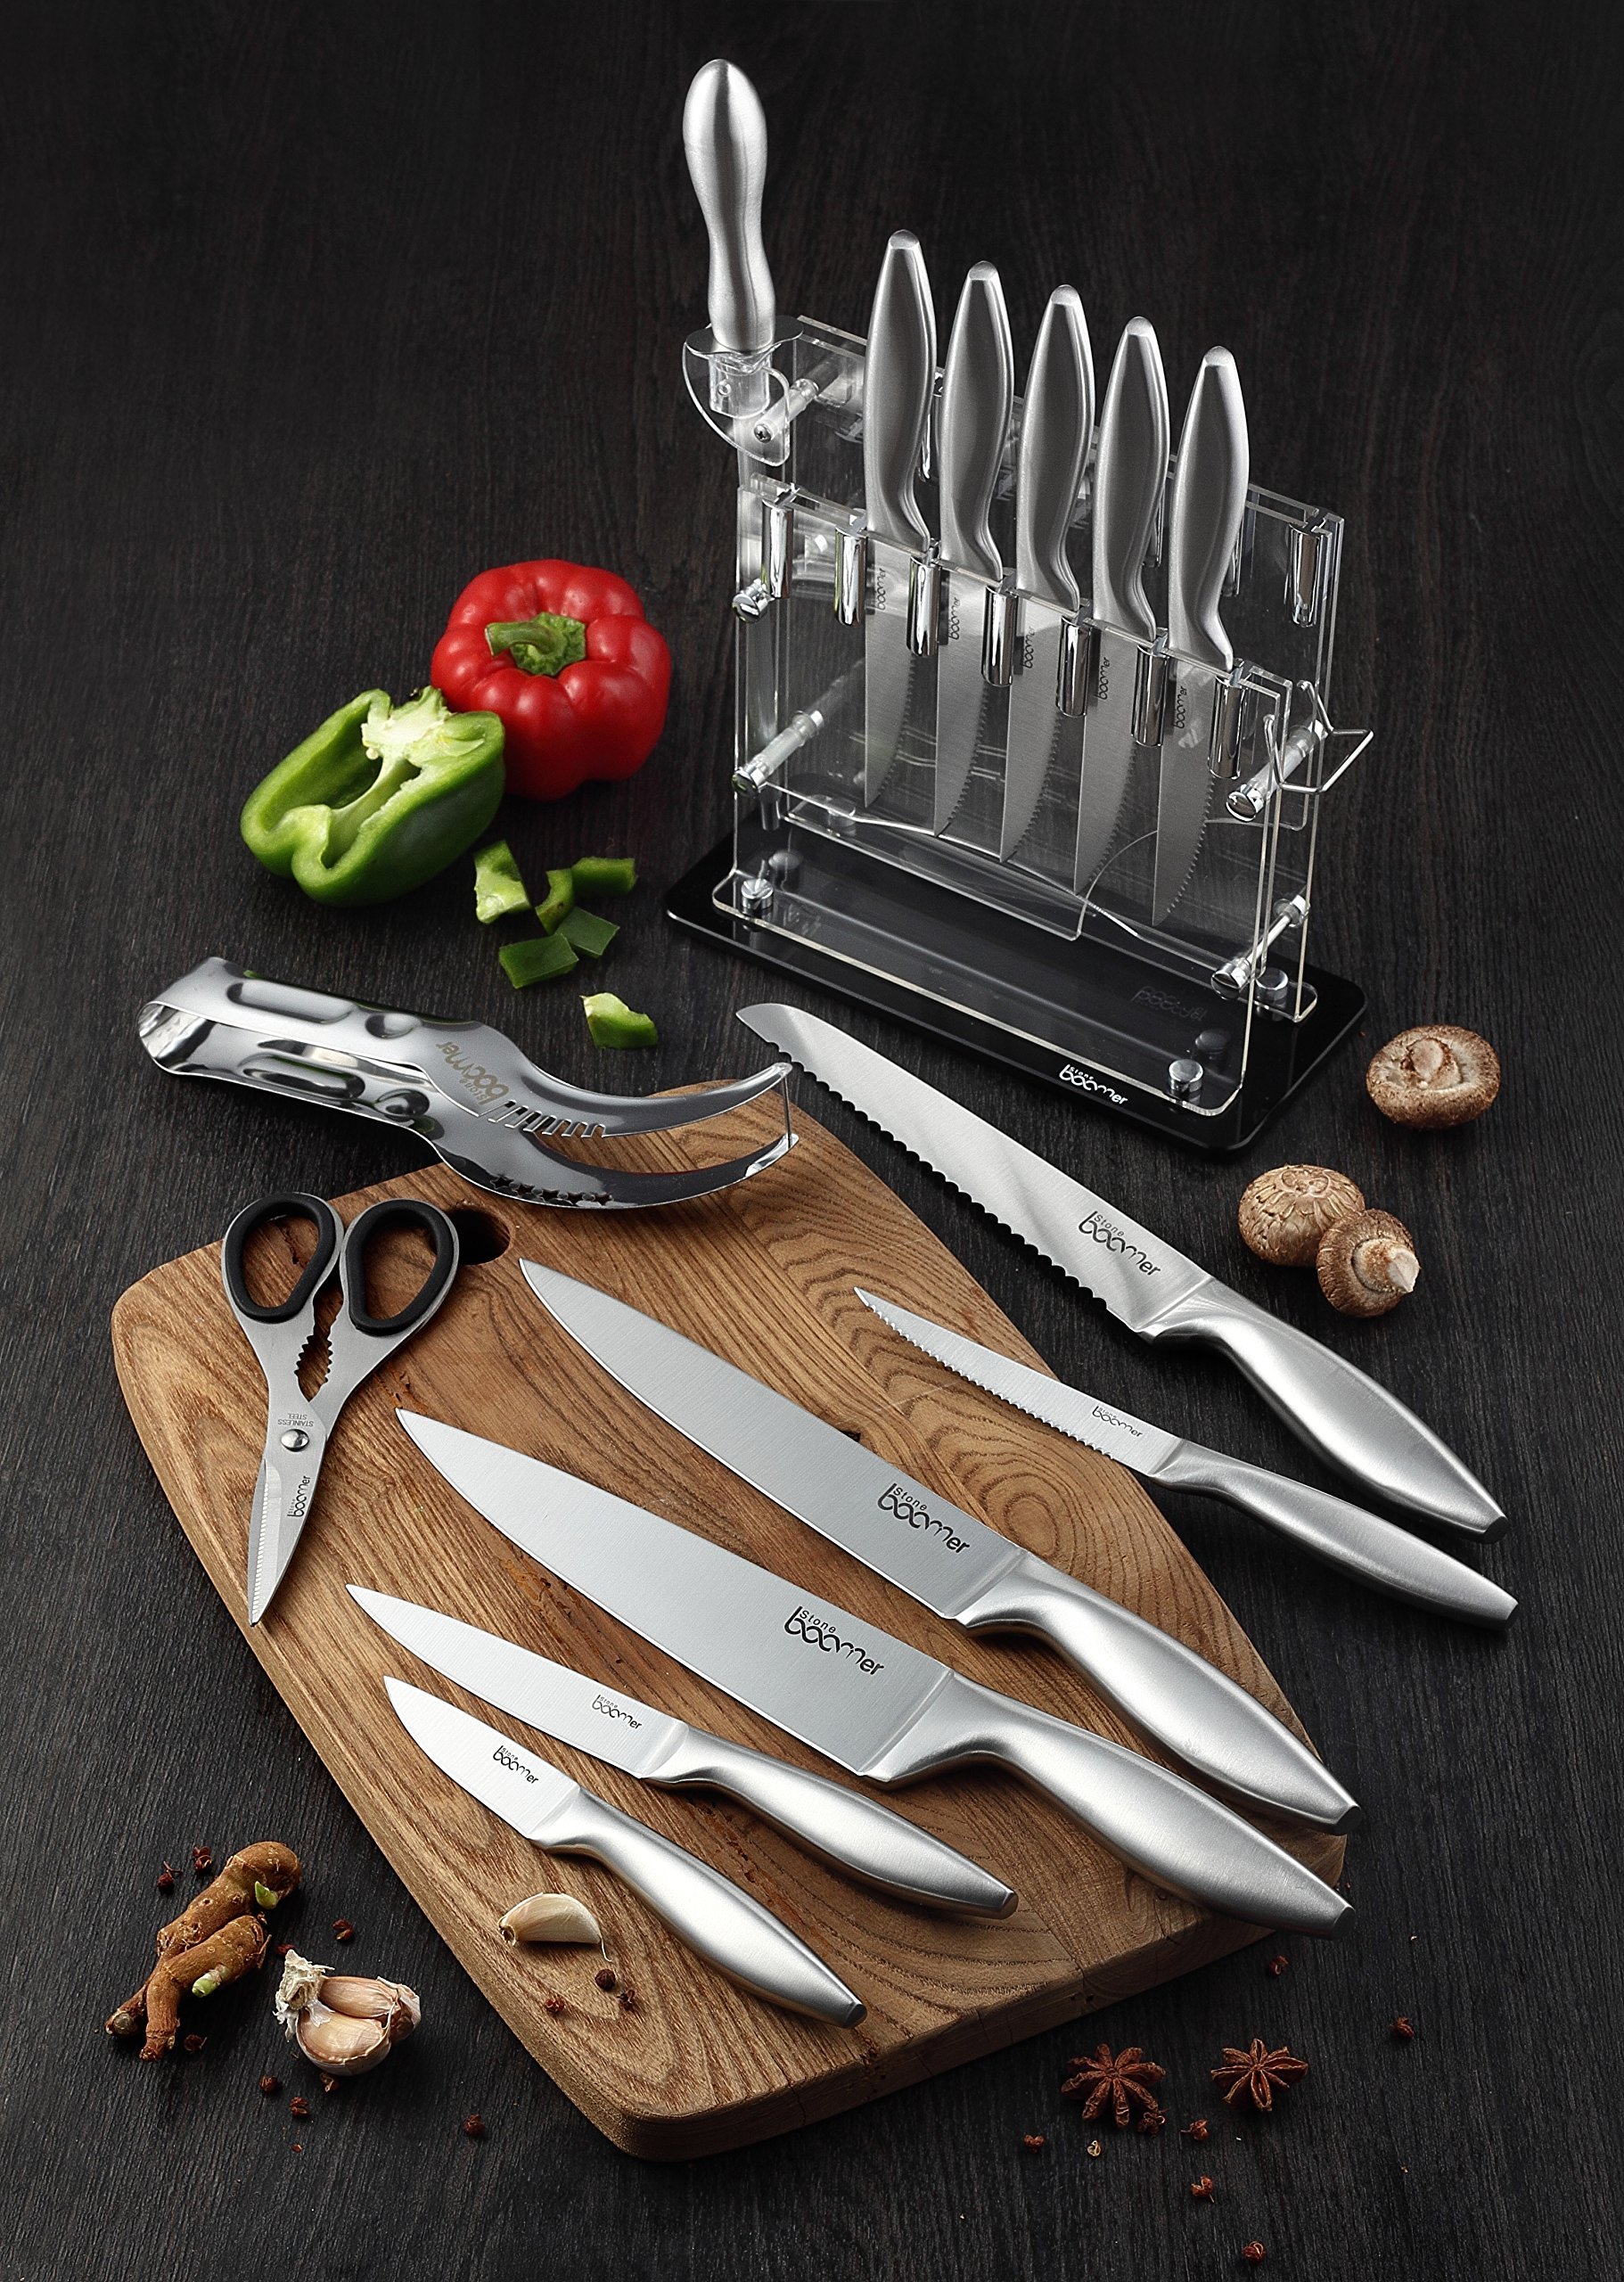 Knife Set, Kitchen Chef Knives - Stone boomer 14 Piece Knife Block Set, Stainless Steel Knife Set, Chef Knife Set, Knives Set, Scissors, Sharpener & Acrylic Stand, Super Sharp,!!! by Stone boomer (Image #8)